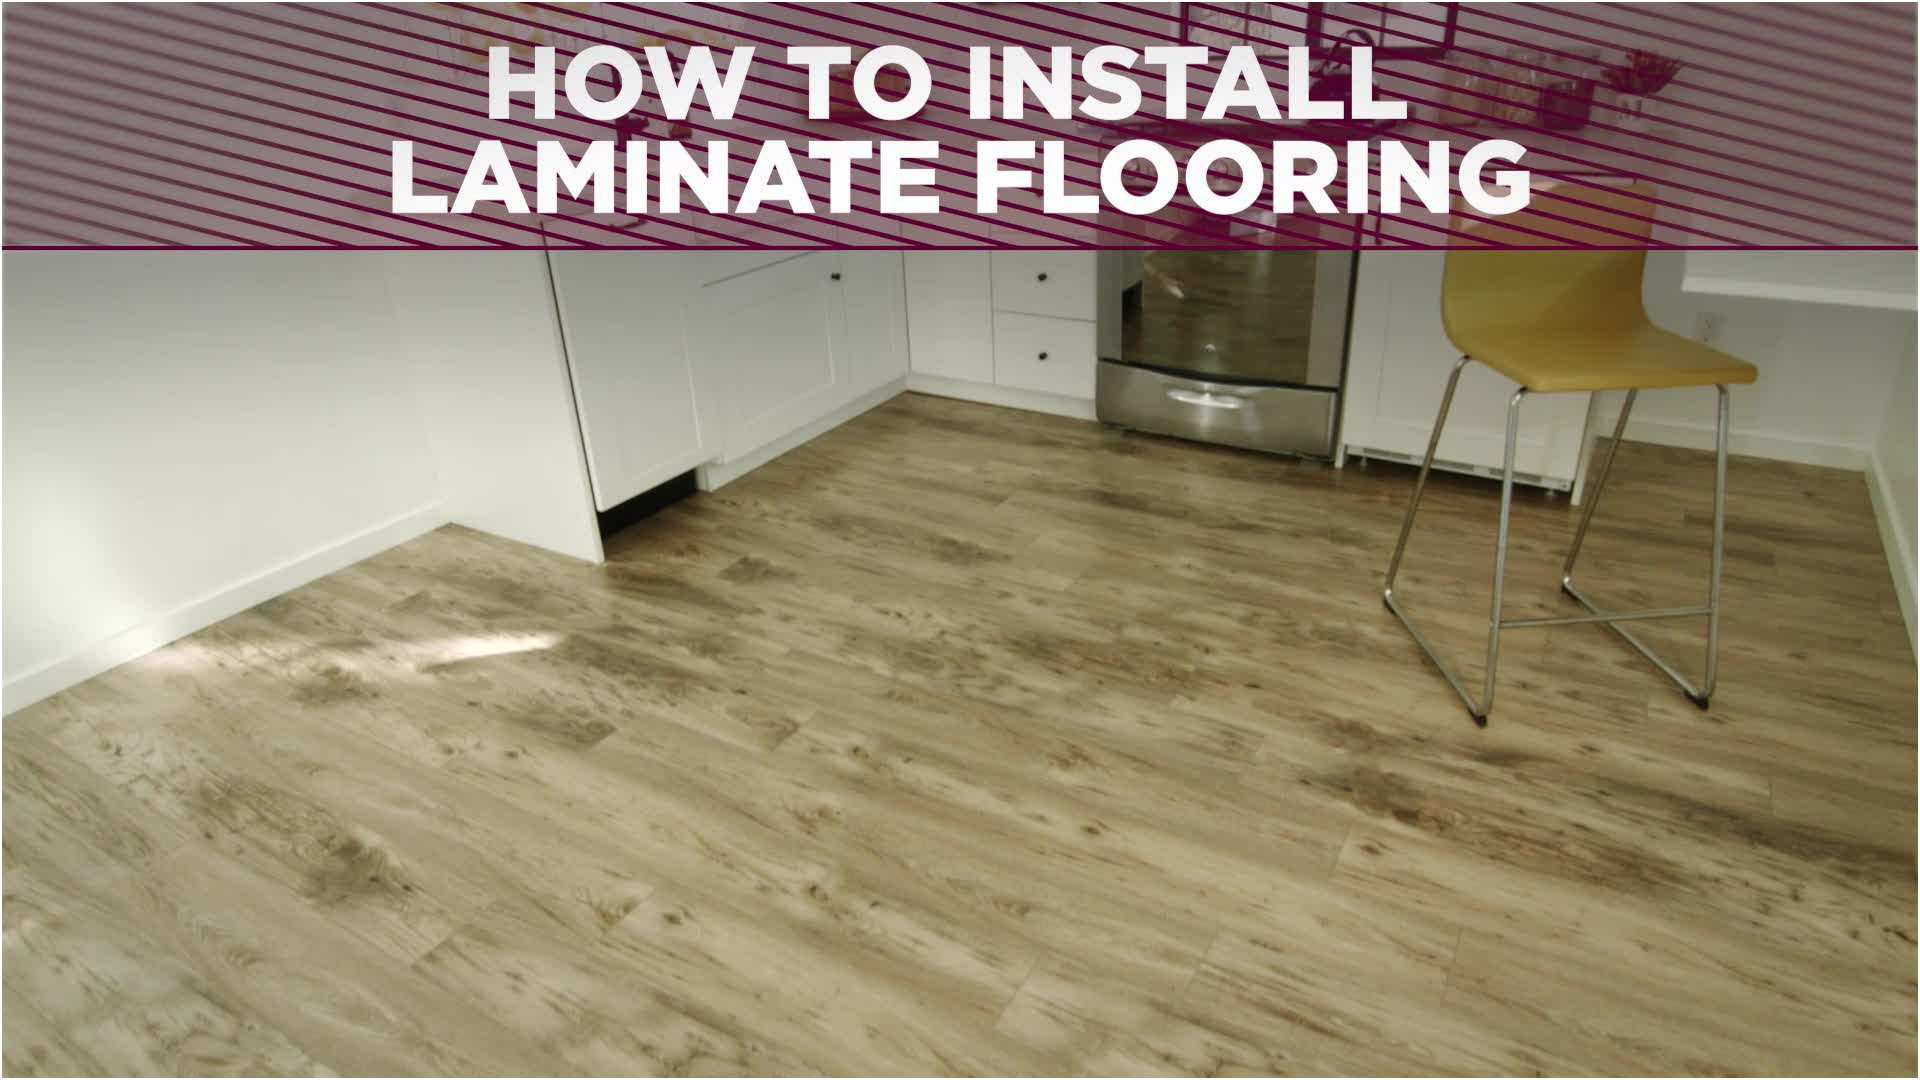 Hardwood Flooring Glued to Concrete Of Best Way to Install Engineered Wood Flooring Over Concrete How to Pertaining to Best Way to Install Engineered Wood Flooring Over Concrete Hardwood Floor Installation How to Nail Hardwood